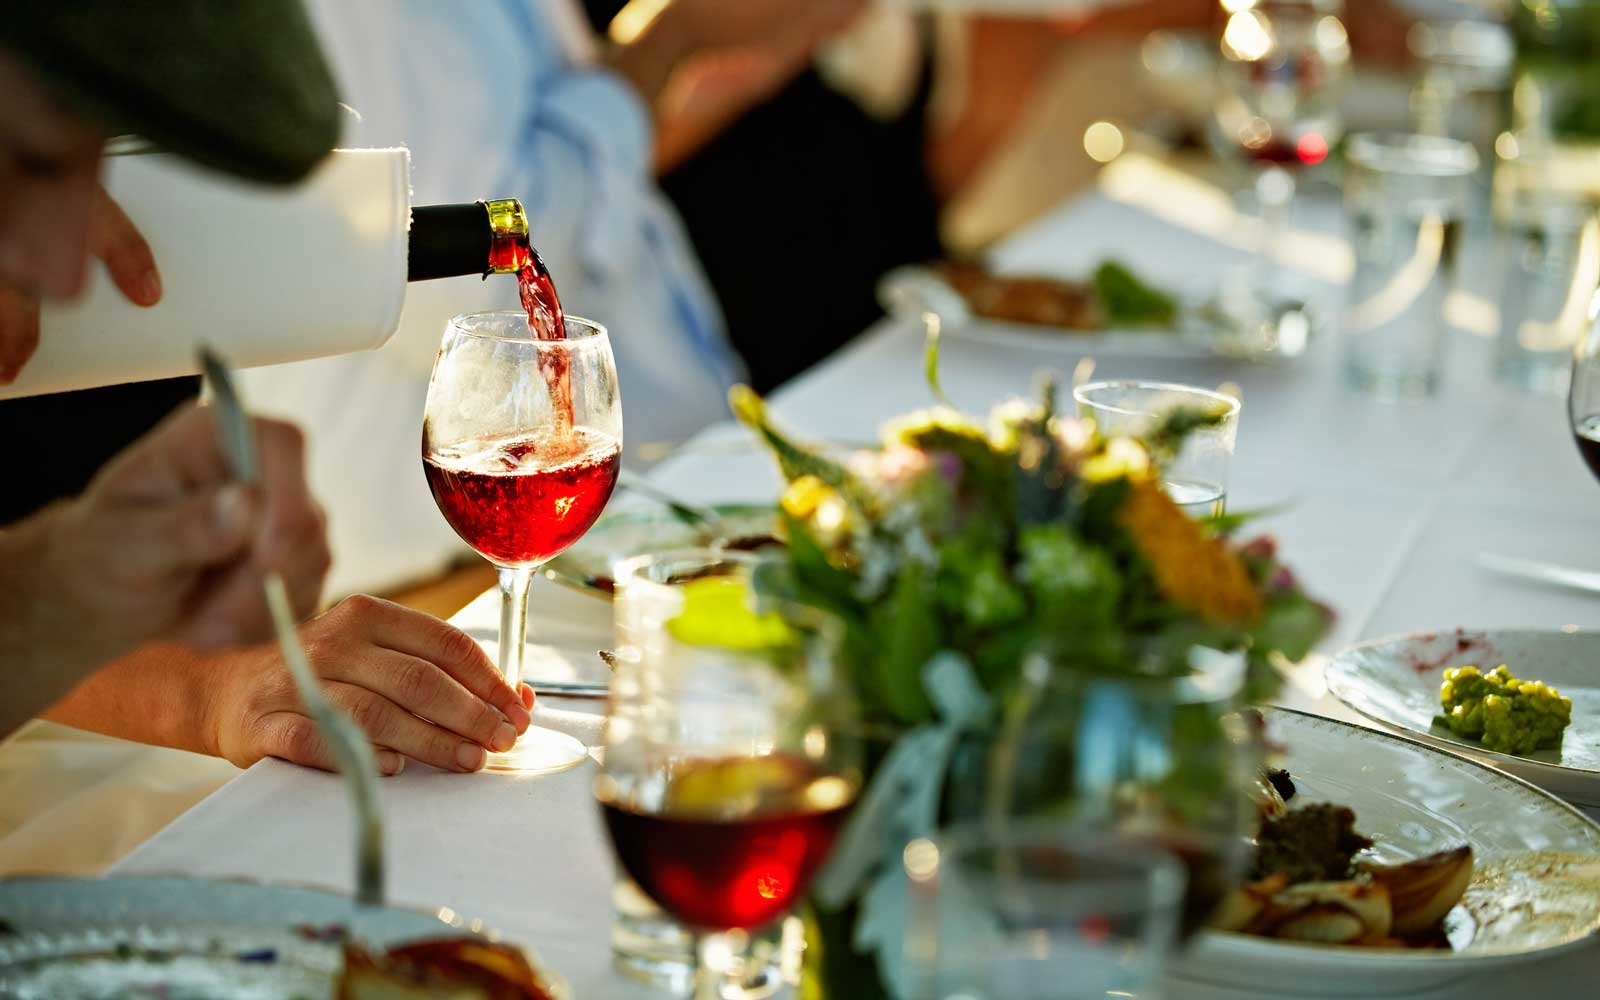 7 Things to Never Do When Ordering Wine at a Restauran